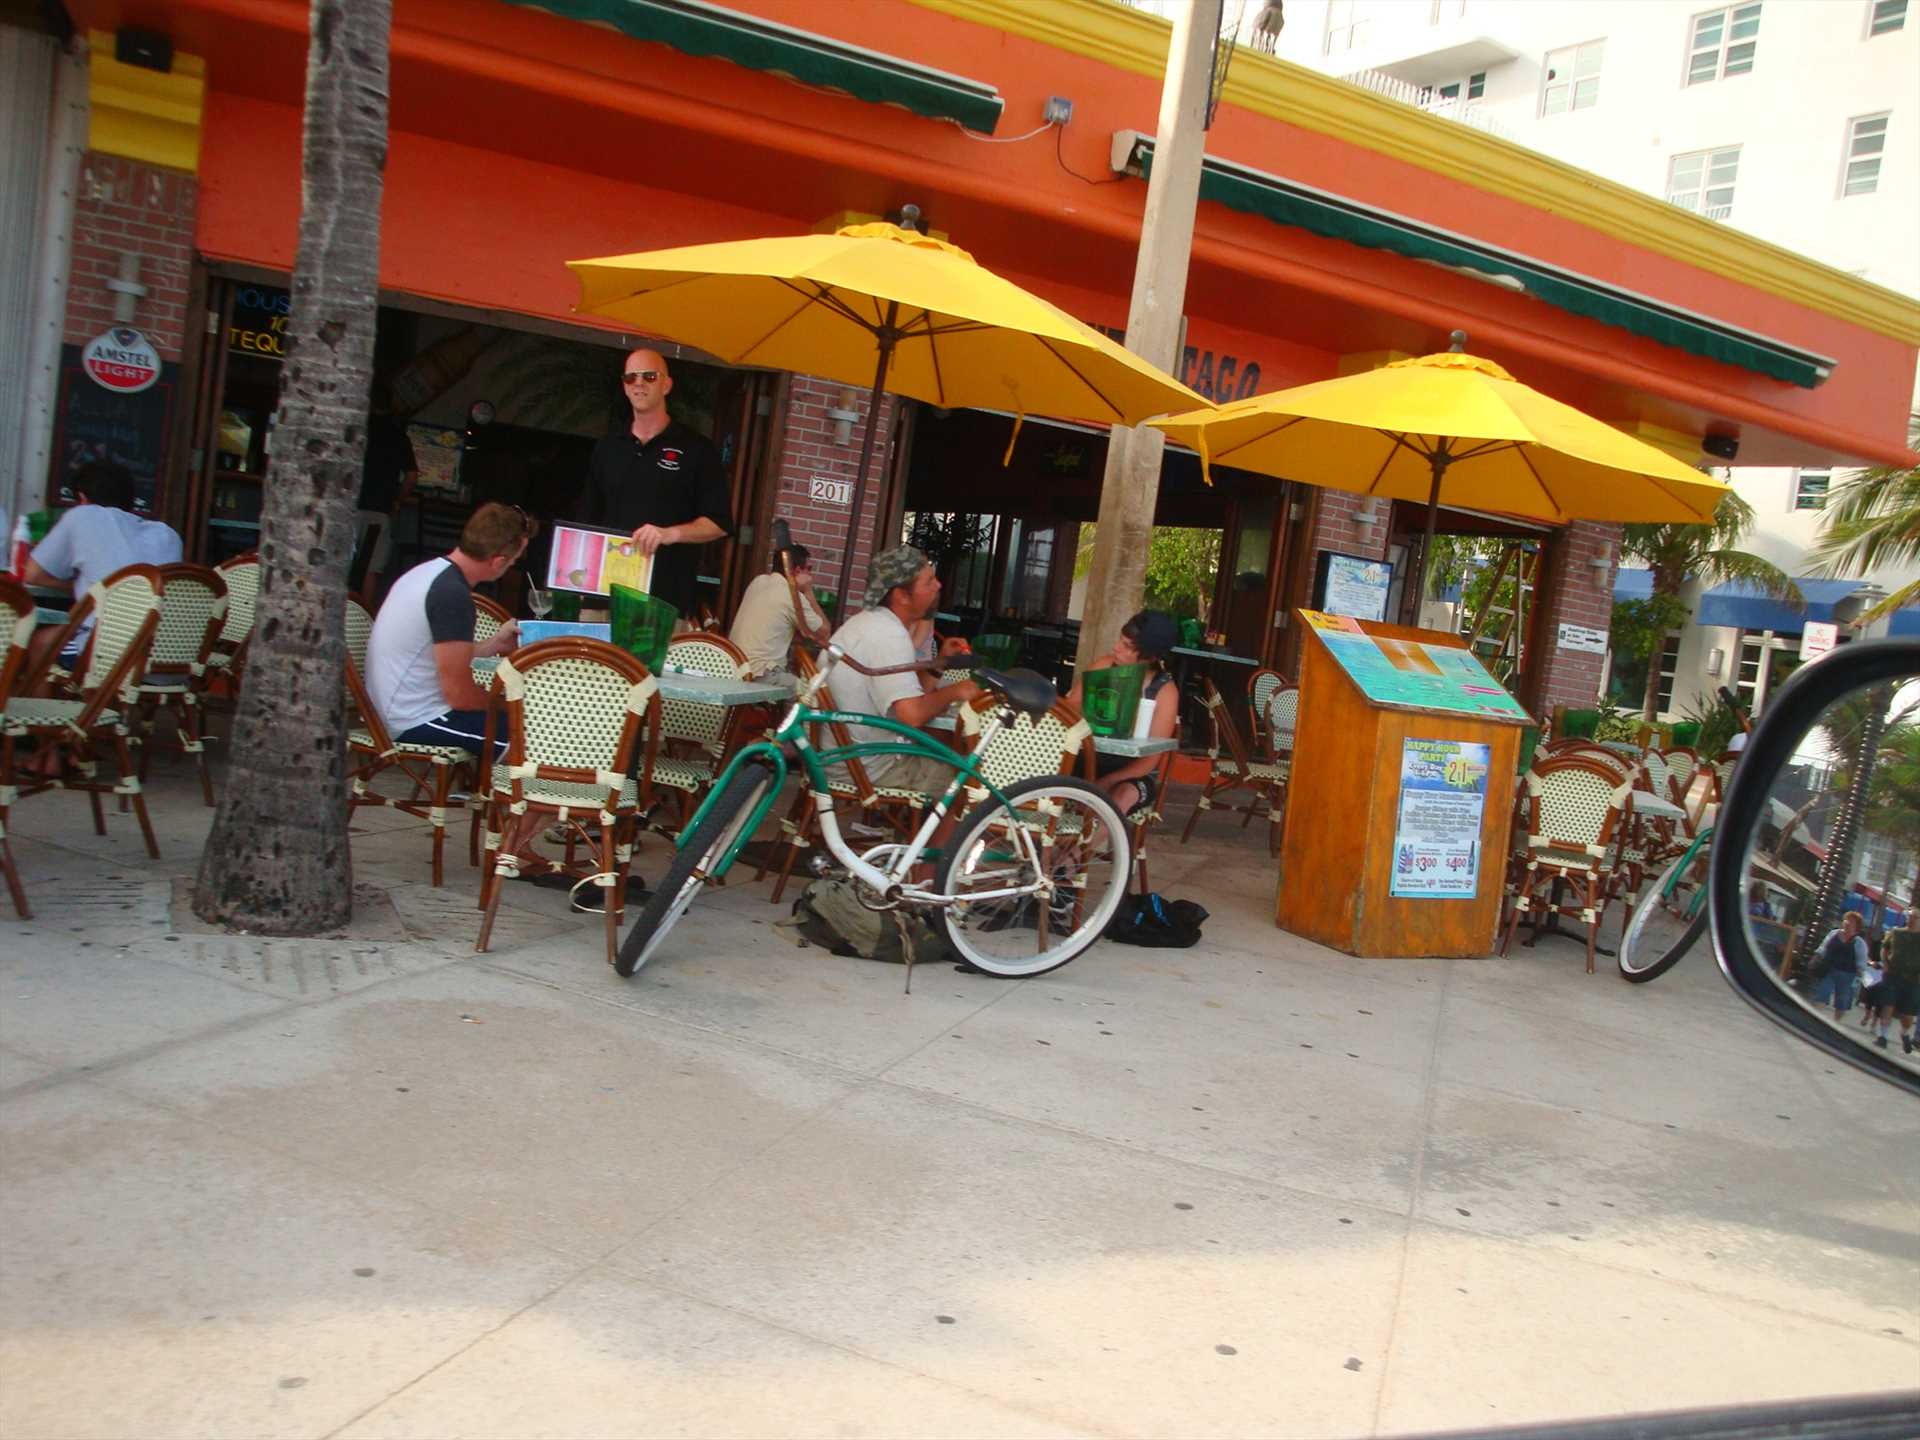 Stop at one of the many sidewalk restaurants for some great